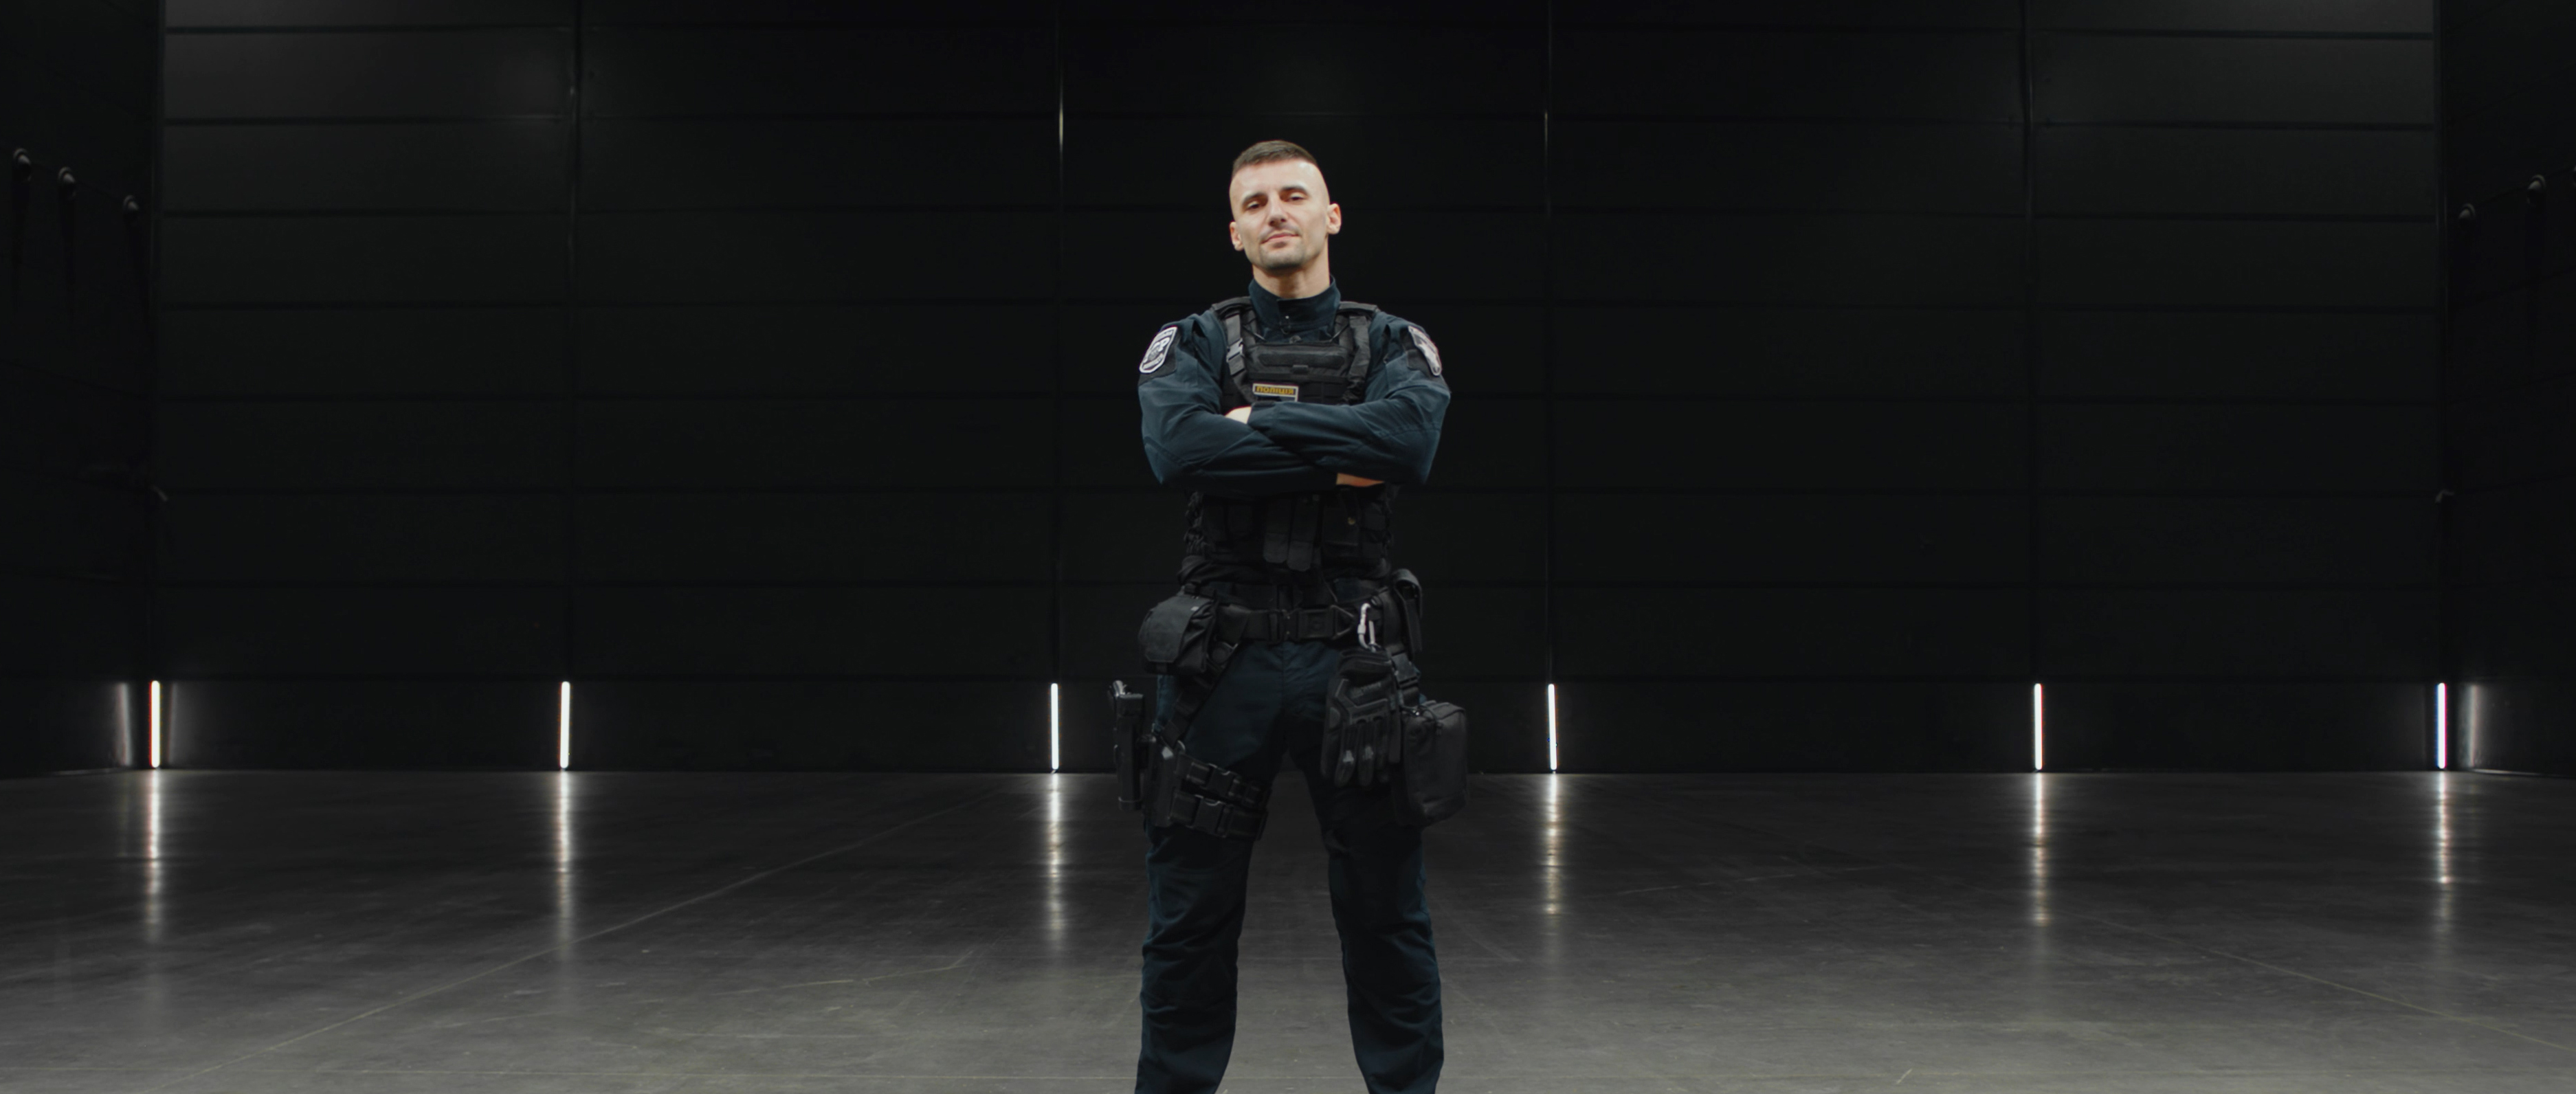 Online course for the Patrol Police of Ukraine